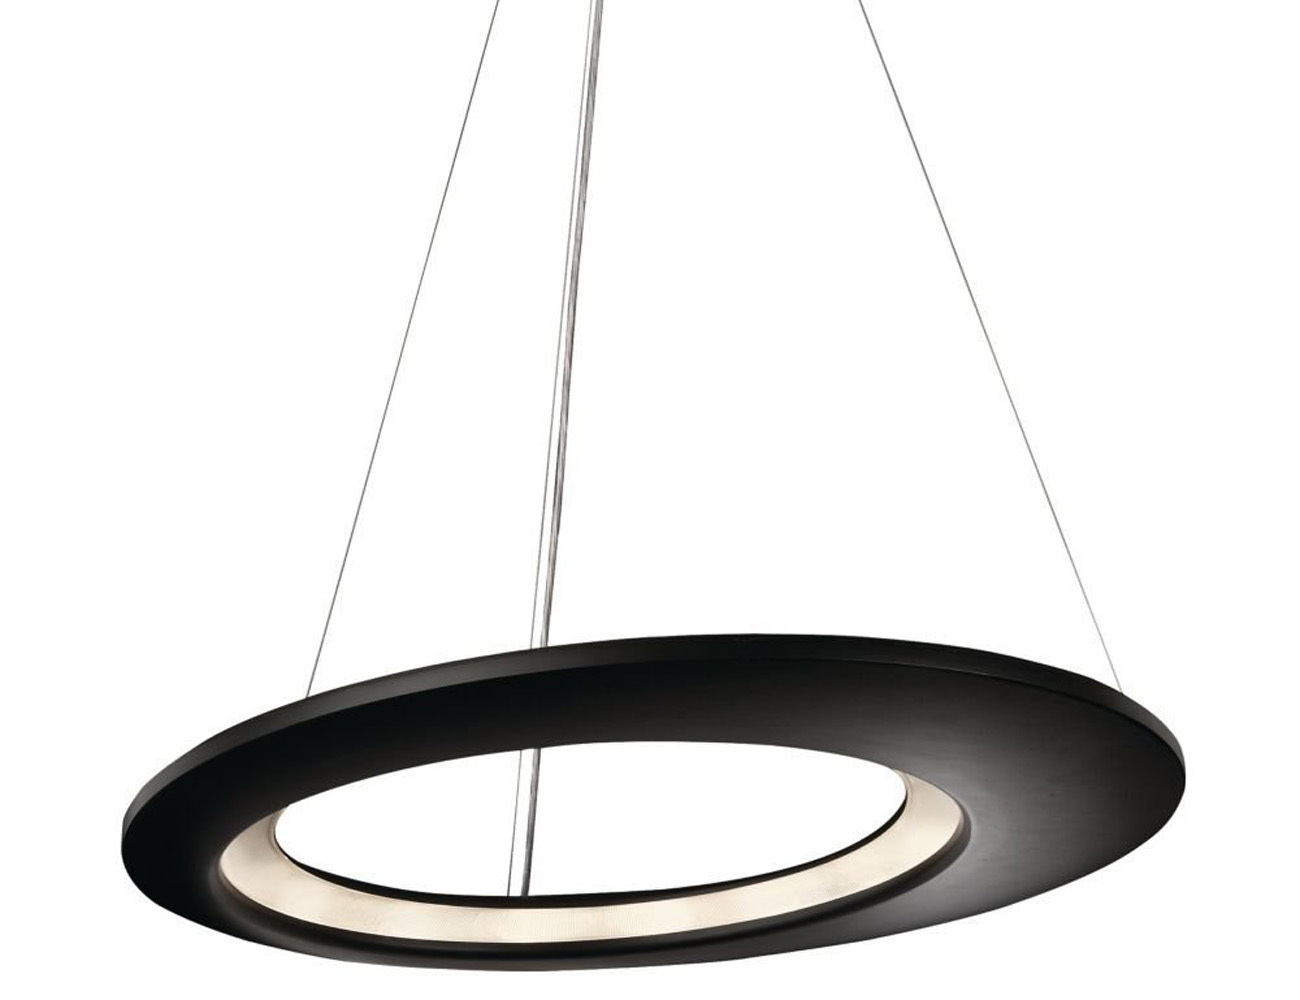 Ecliptic Pendant – An Interplanetary Pendant Lamp Design